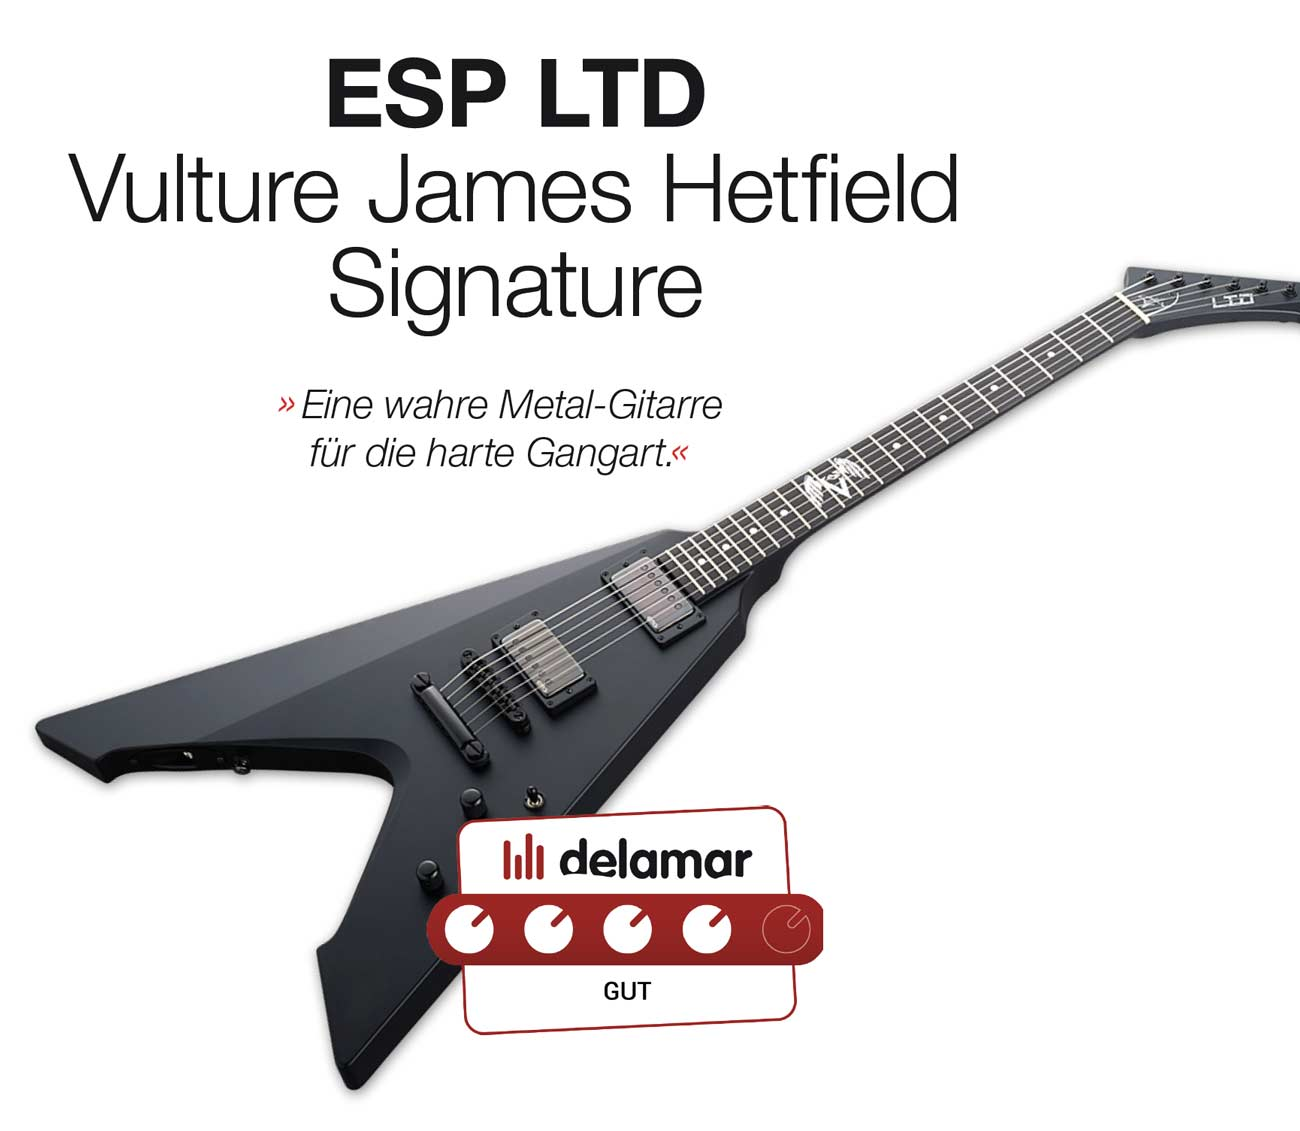 ESP LTD Vulture James Hetfield Signature Testbericht von Delamar